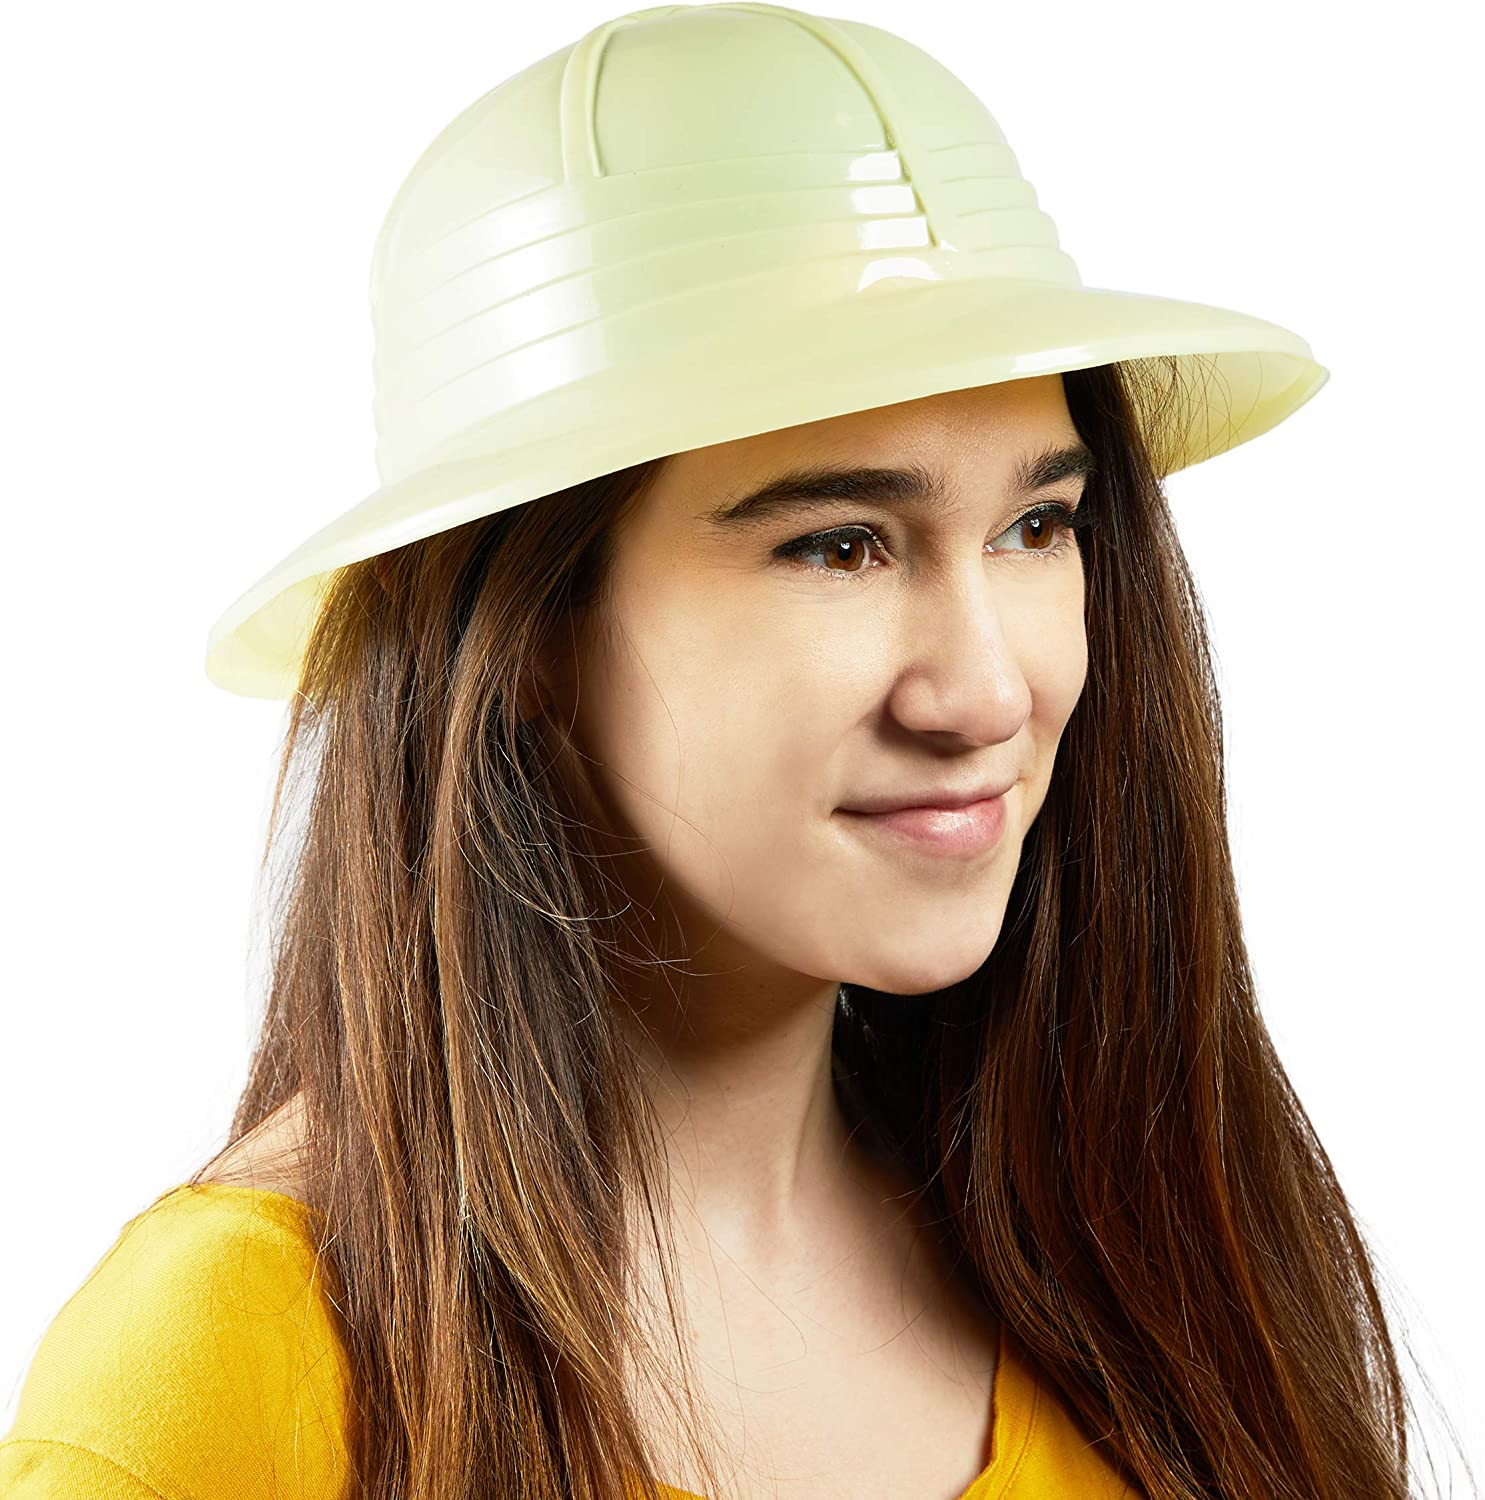 Safari Hats for Jungle Birthday Parties 12.6 x 10.6 x 5.5 in, Unisex, 20 Pack